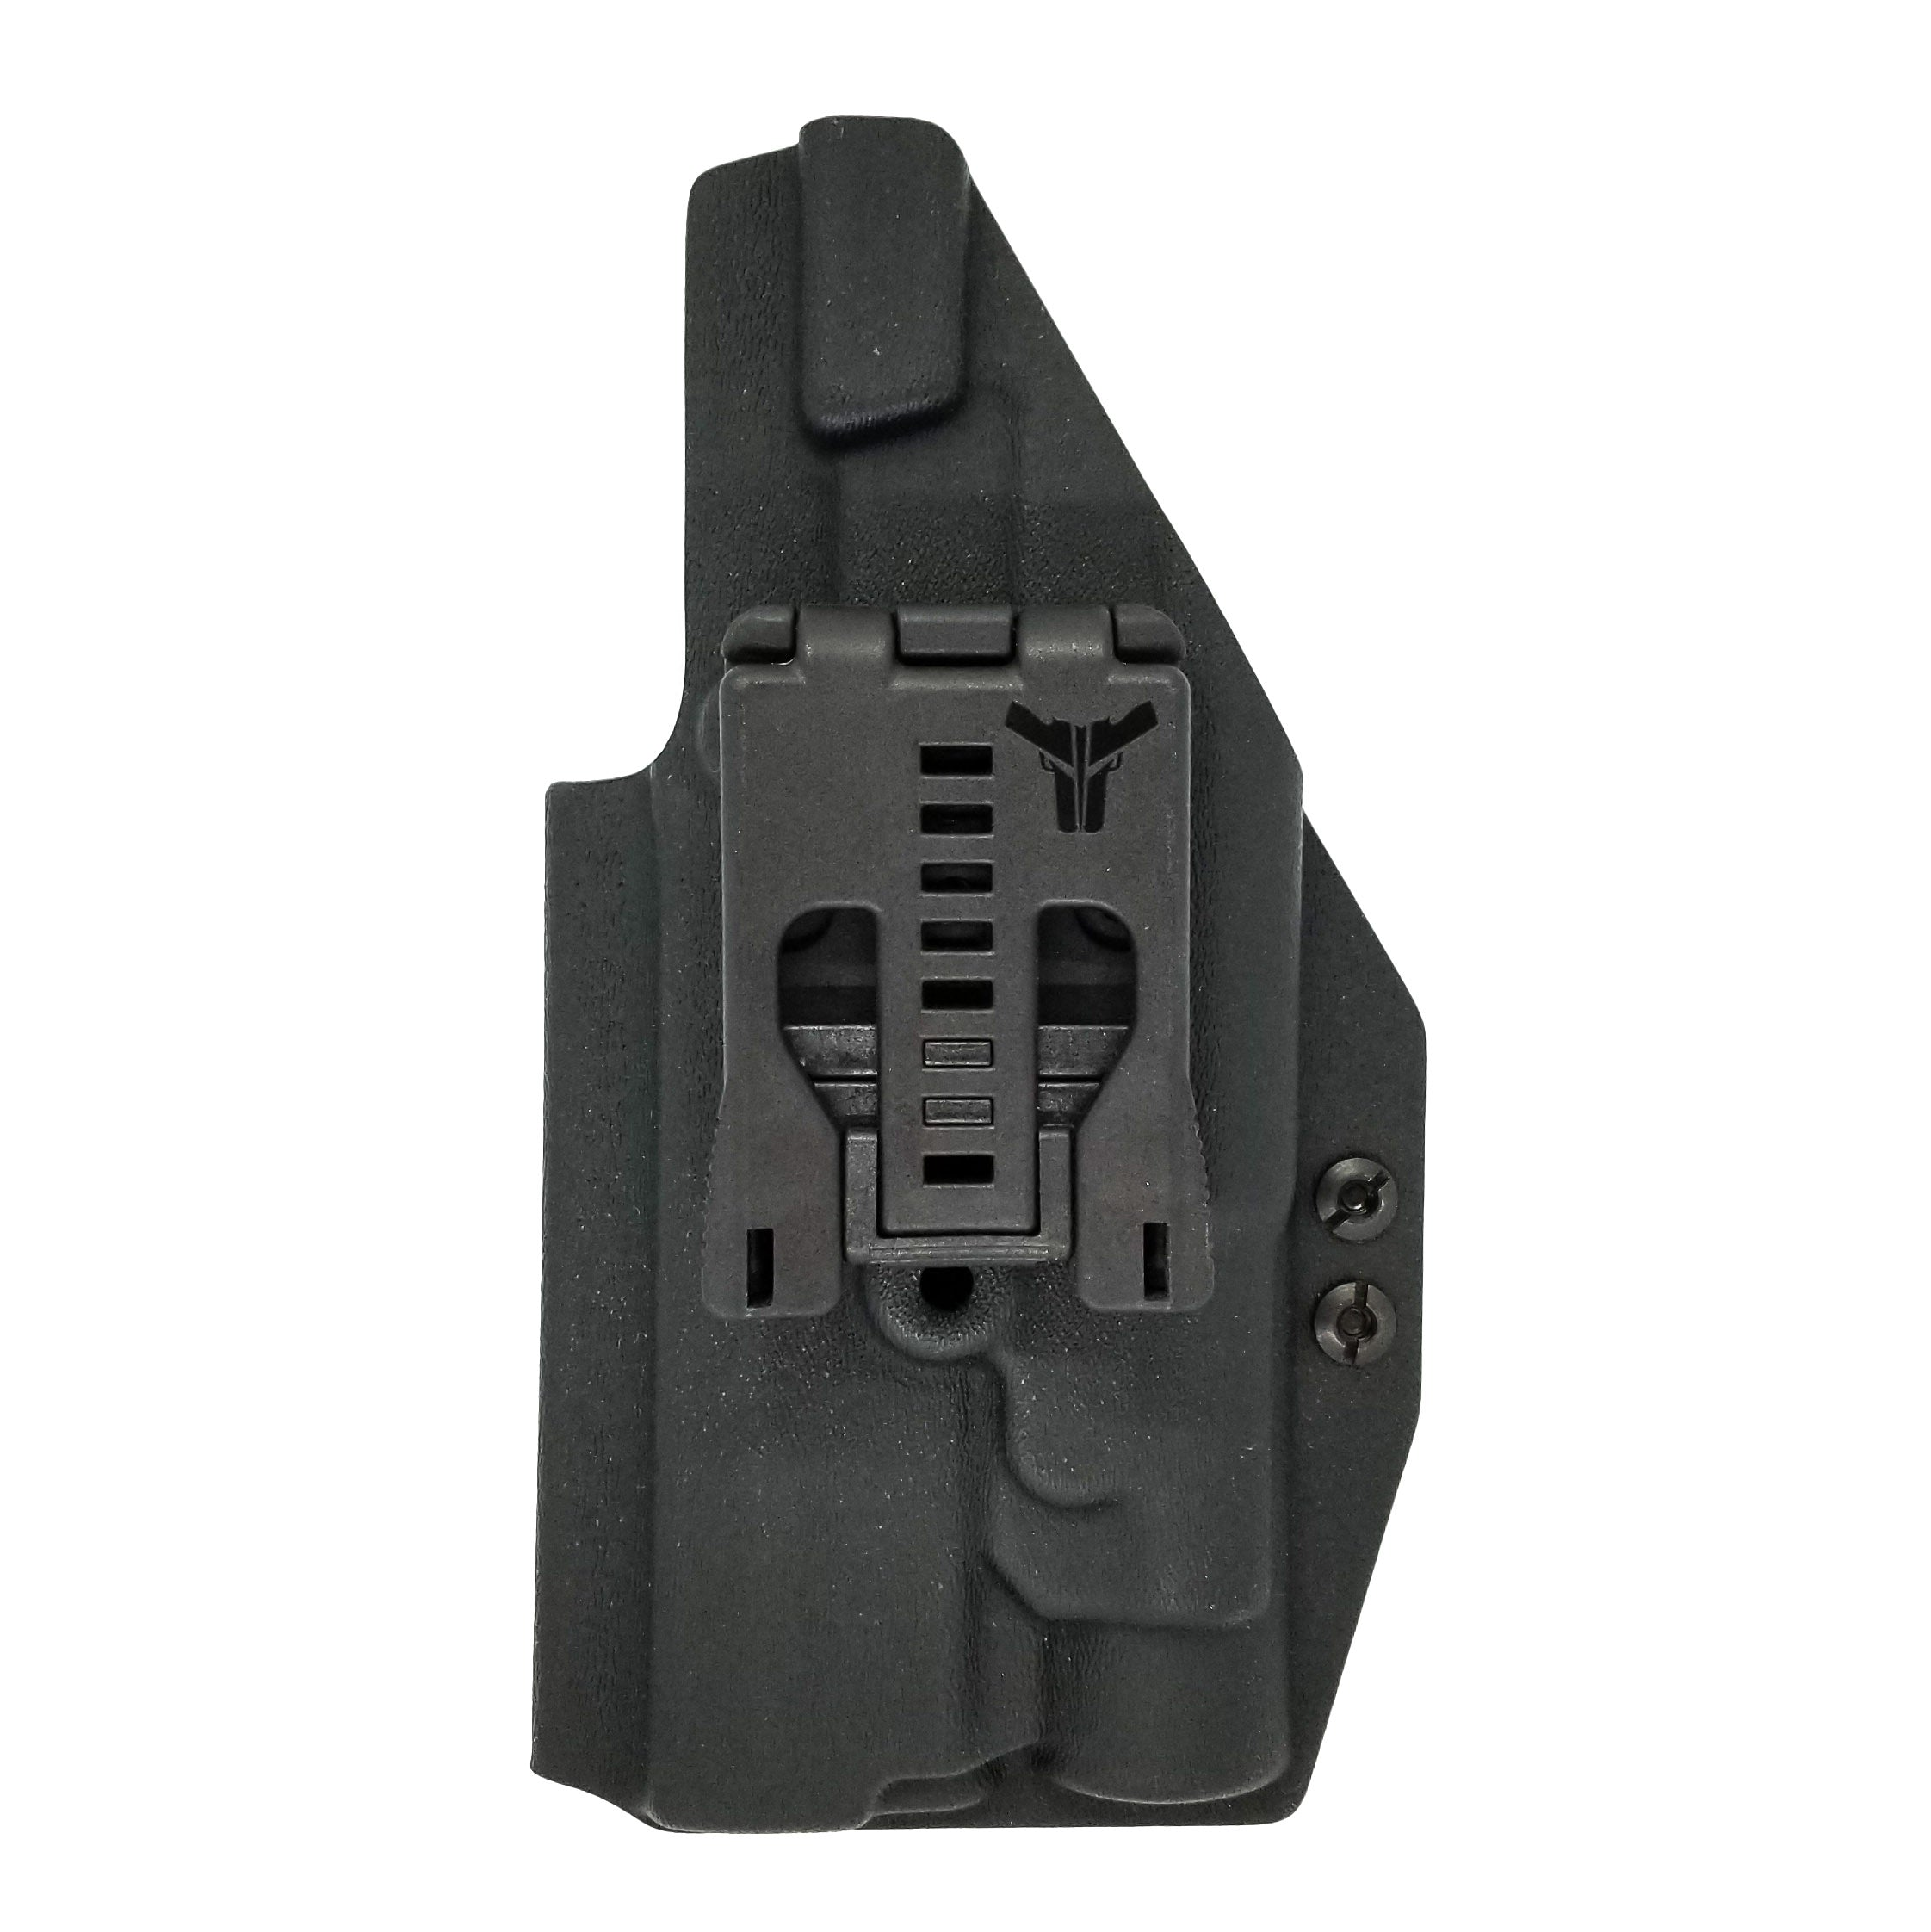 Sig Sauer P320 with TLR-1 OWB Holster